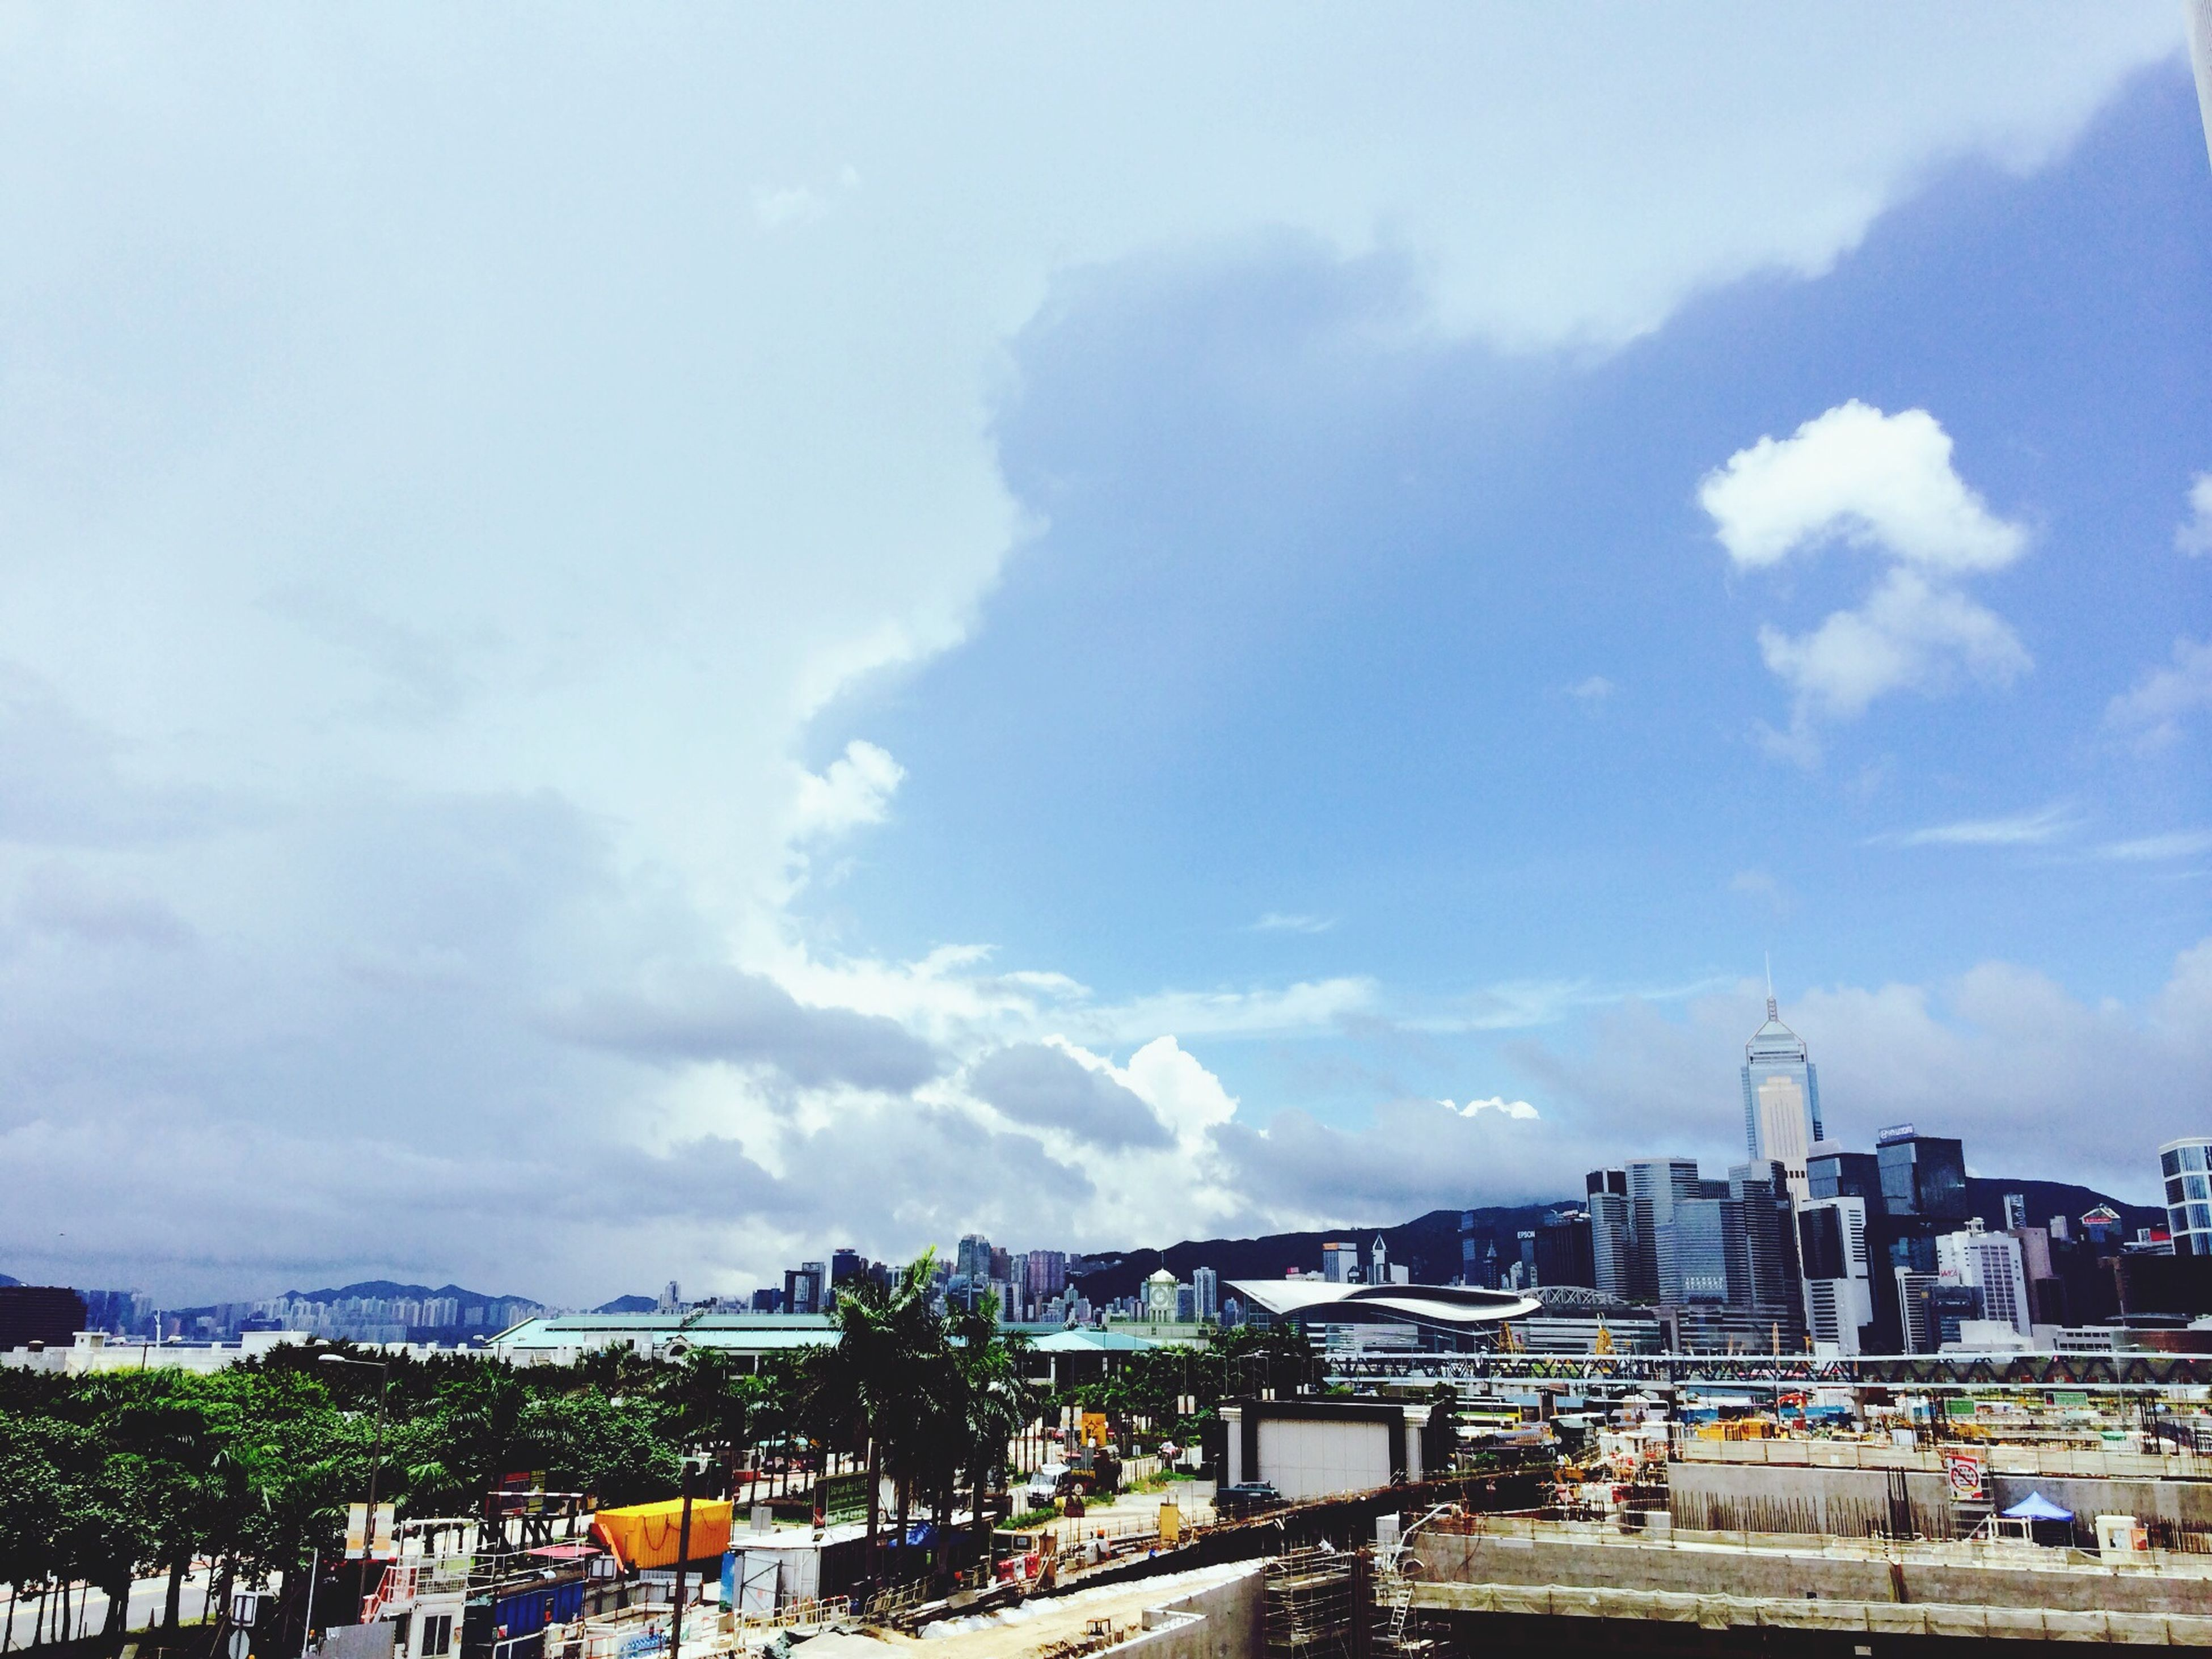 sky, building exterior, built structure, architecture, cloud - sky, transportation, cloudy, city, cloud, mode of transport, road, day, car, cityscape, outdoors, street, residential building, high angle view, no people, land vehicle